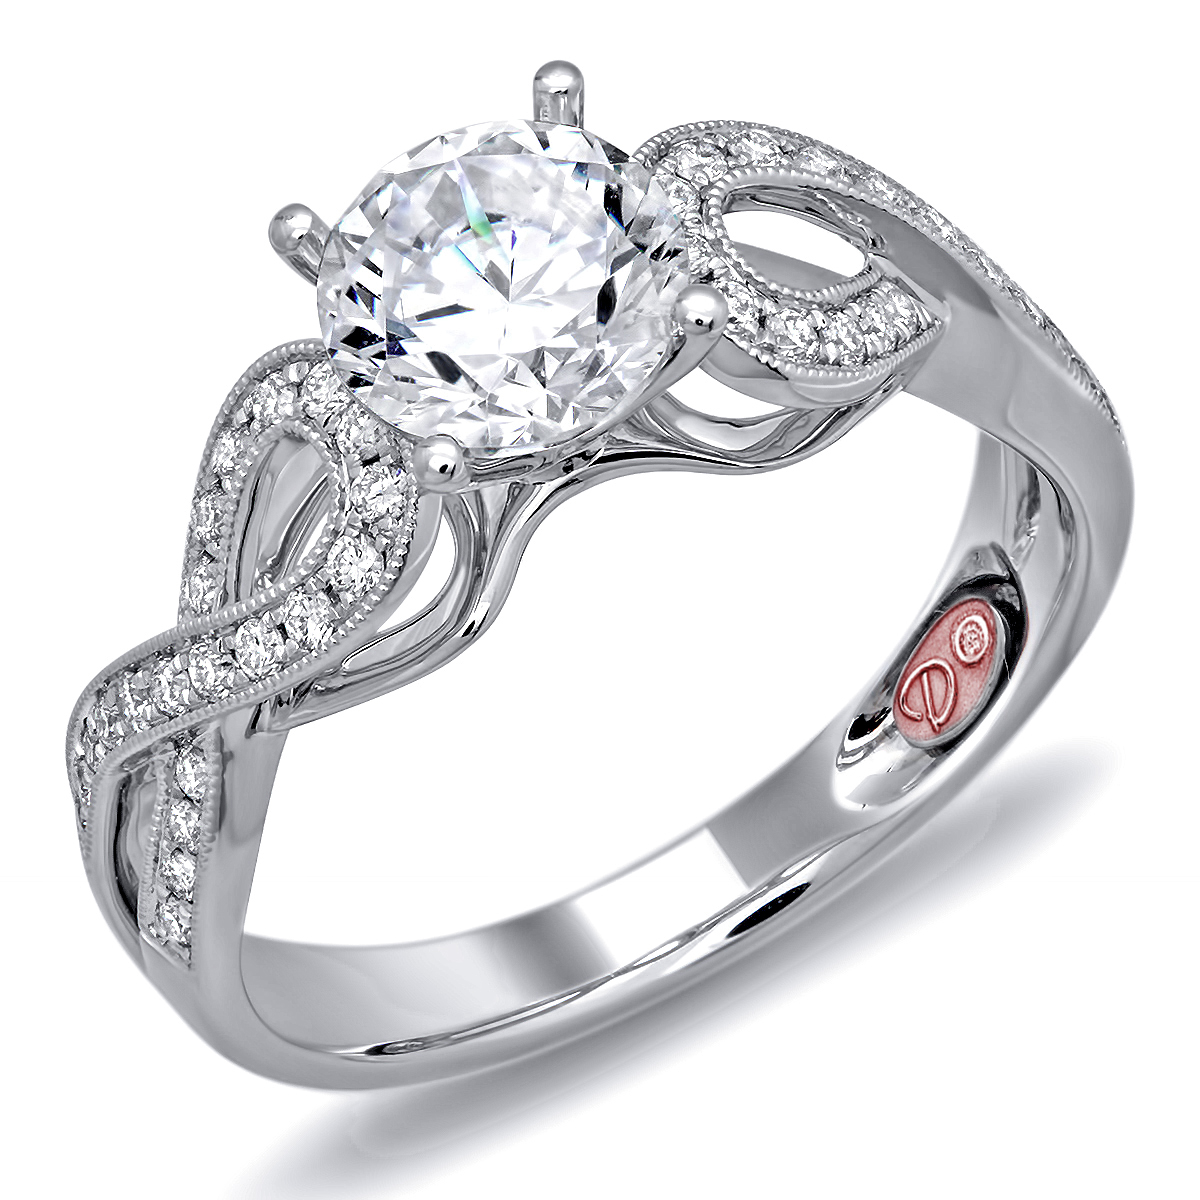 Beautiful White Gold Diamond Engagement Ring | Demarco Bridal ...